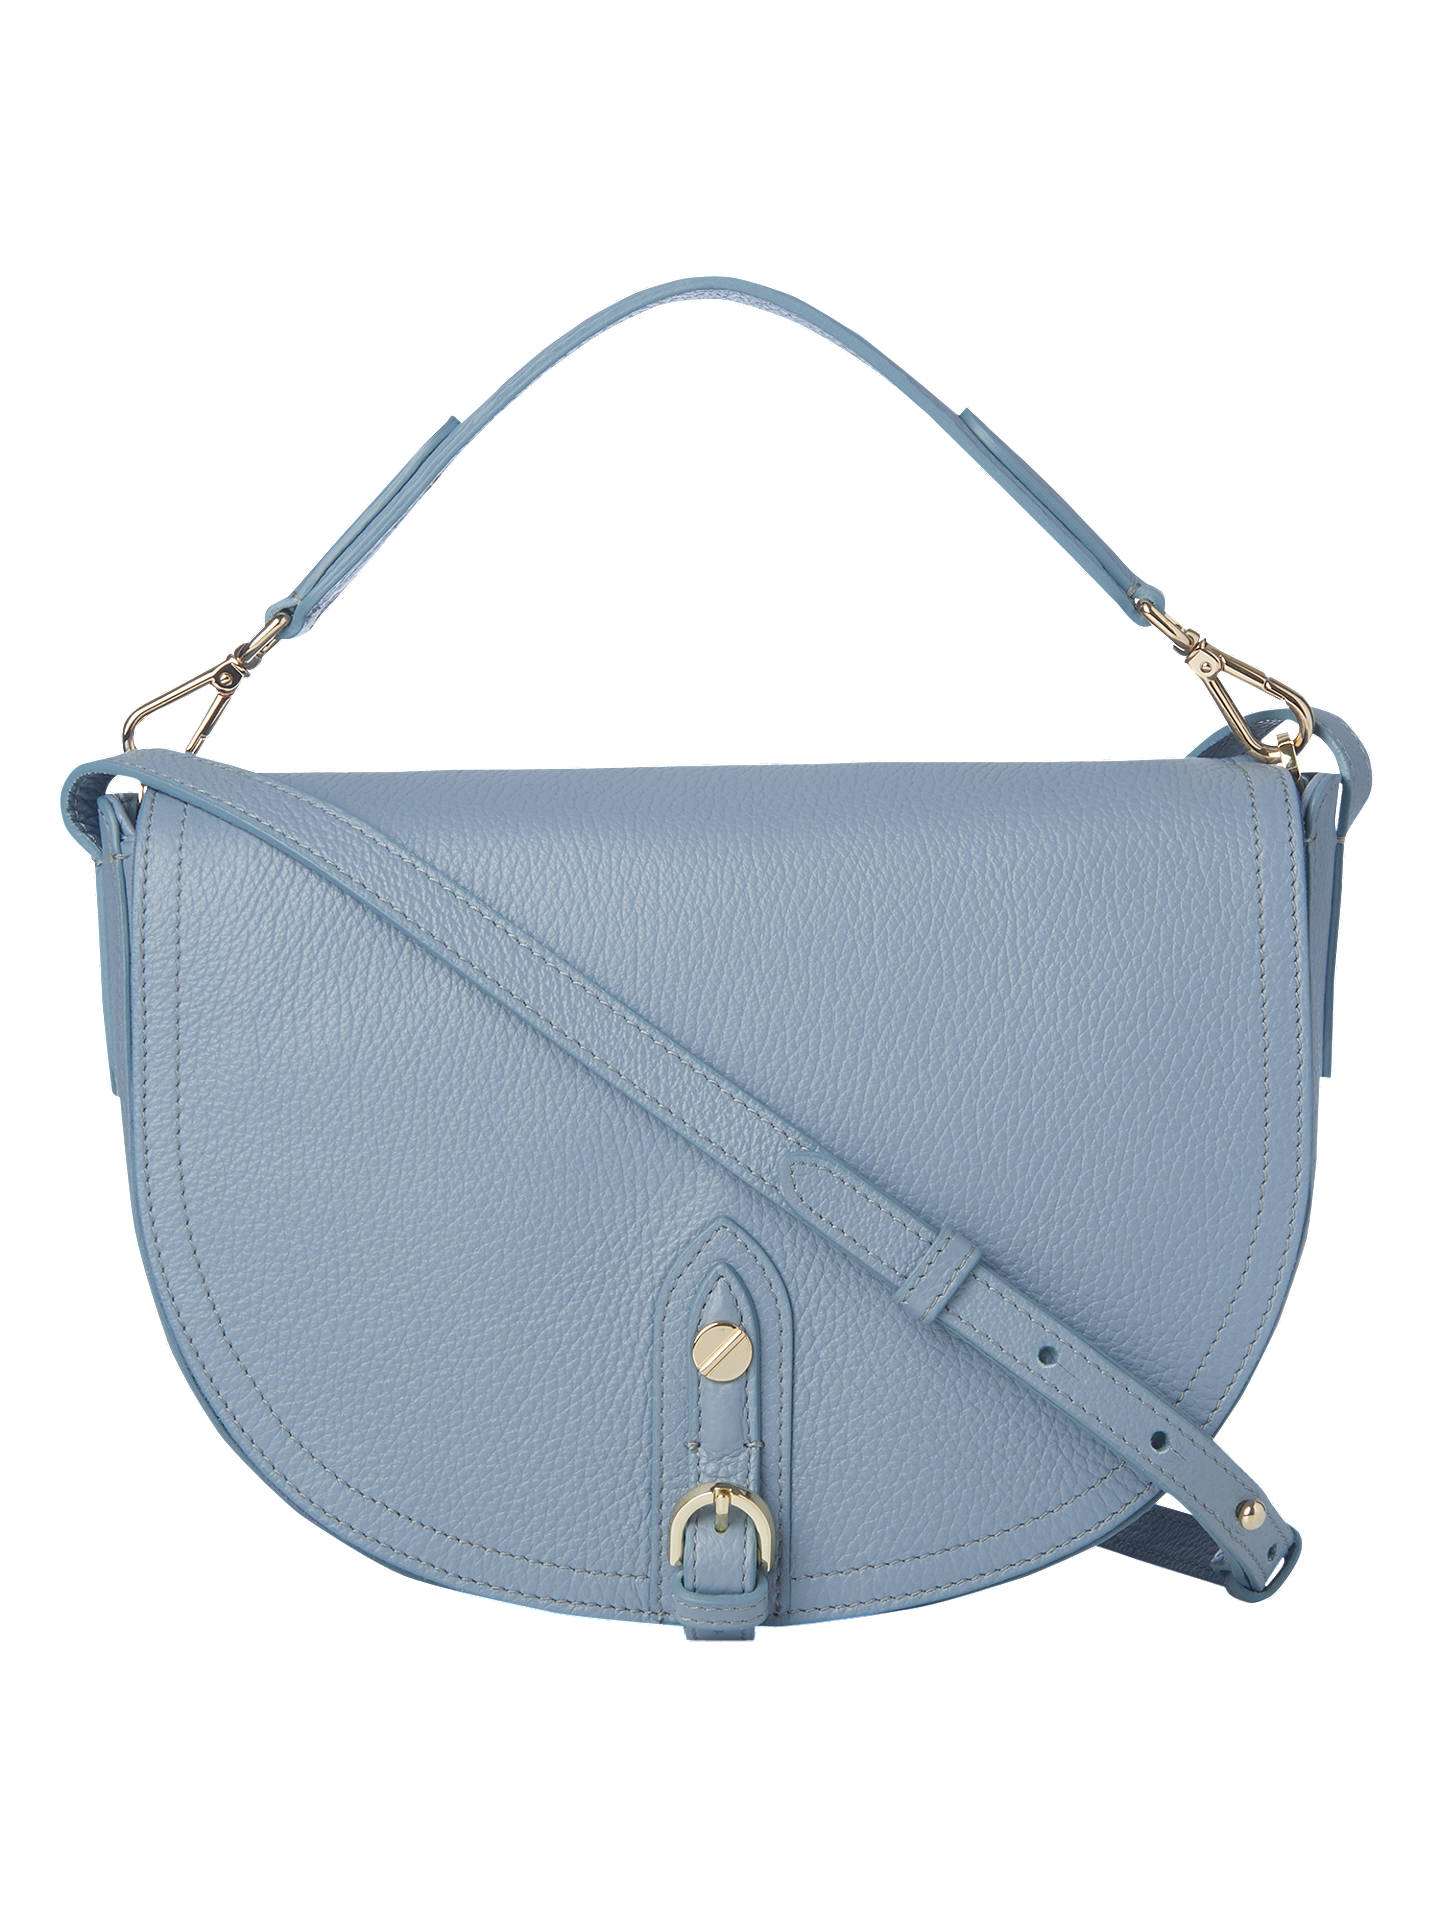 K.Bennett Andrea Leather Shoulder Bag, Powder Blue Online at johnlewis.